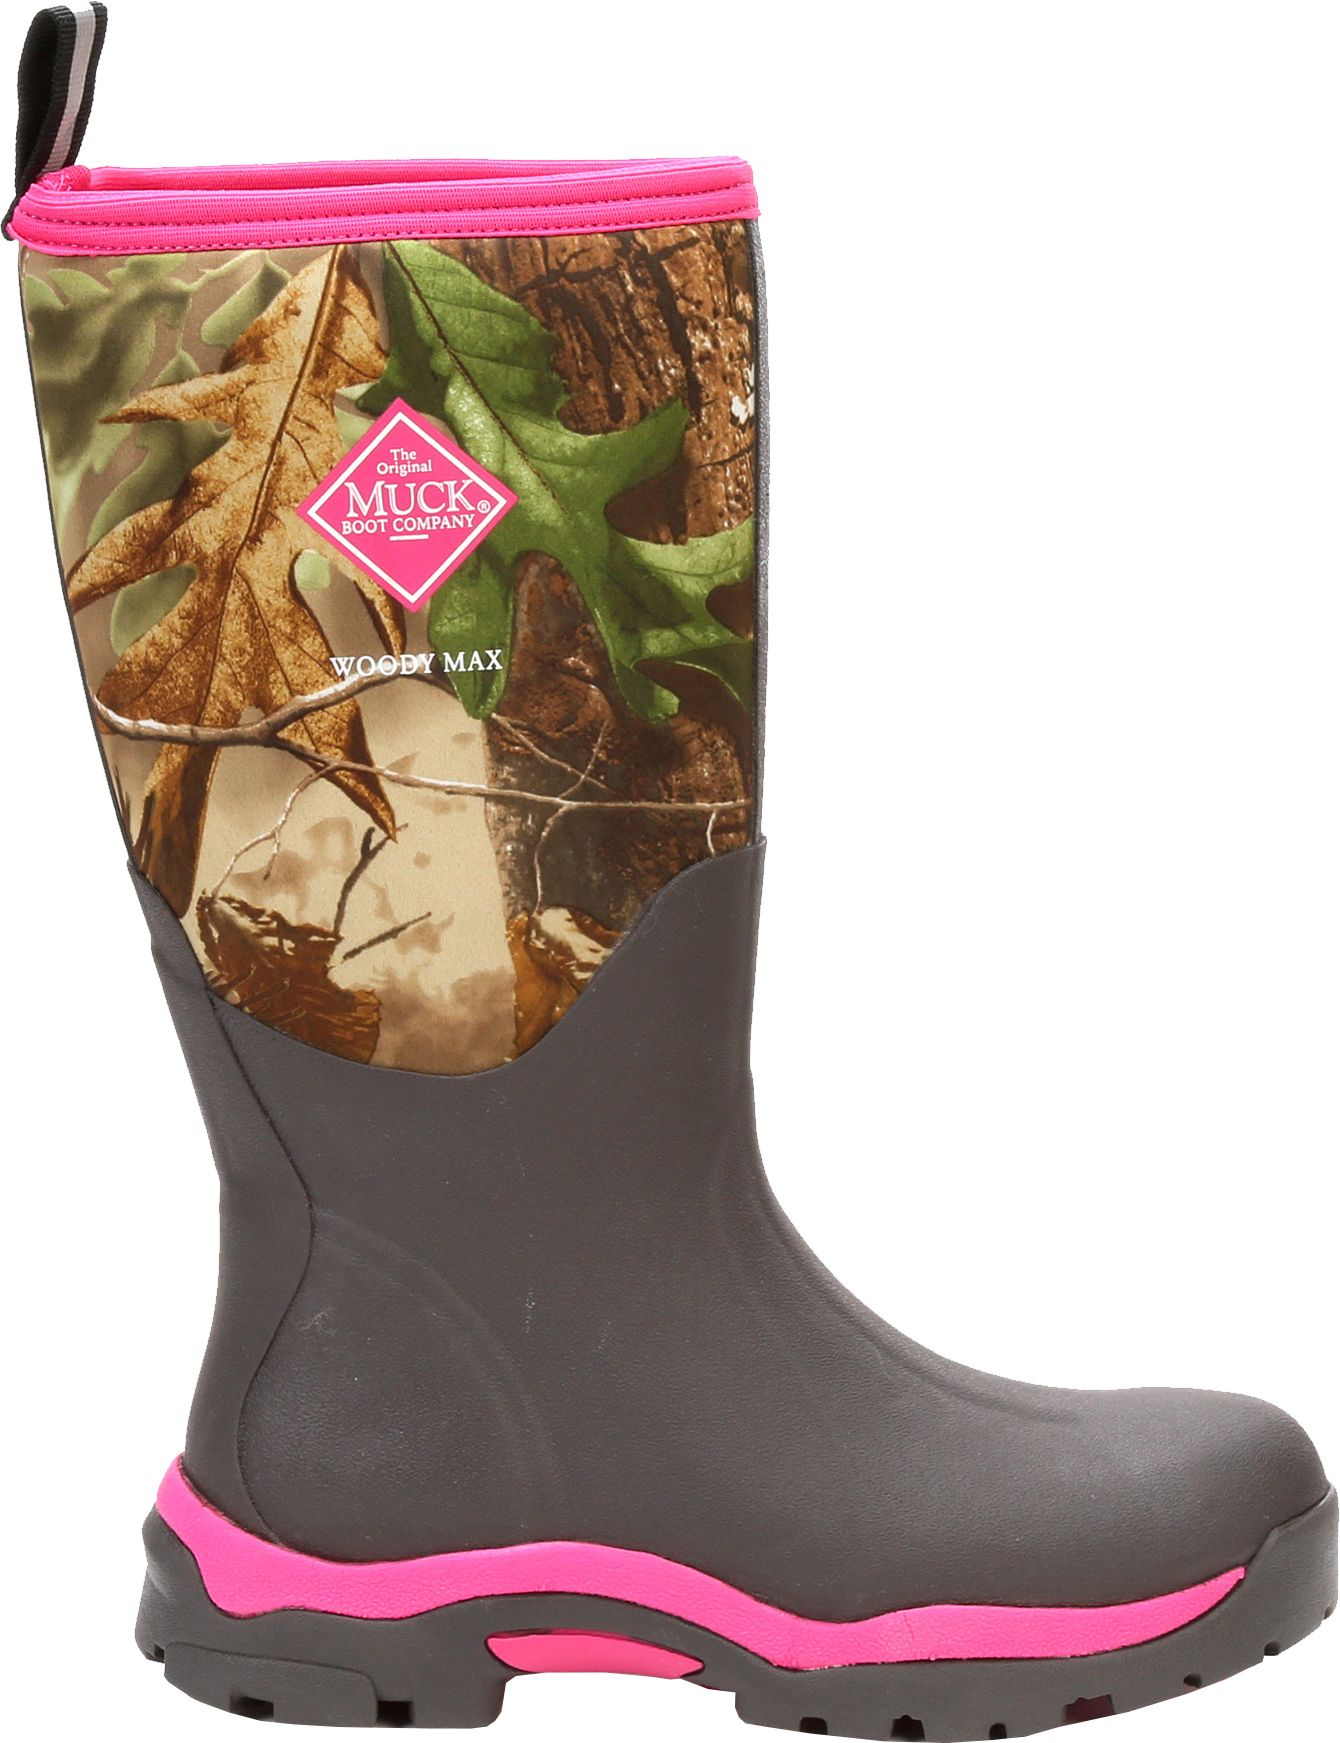 Muck Boot Women's Woody Max Rubber Hunting Boots| DICK'S Sporting ...